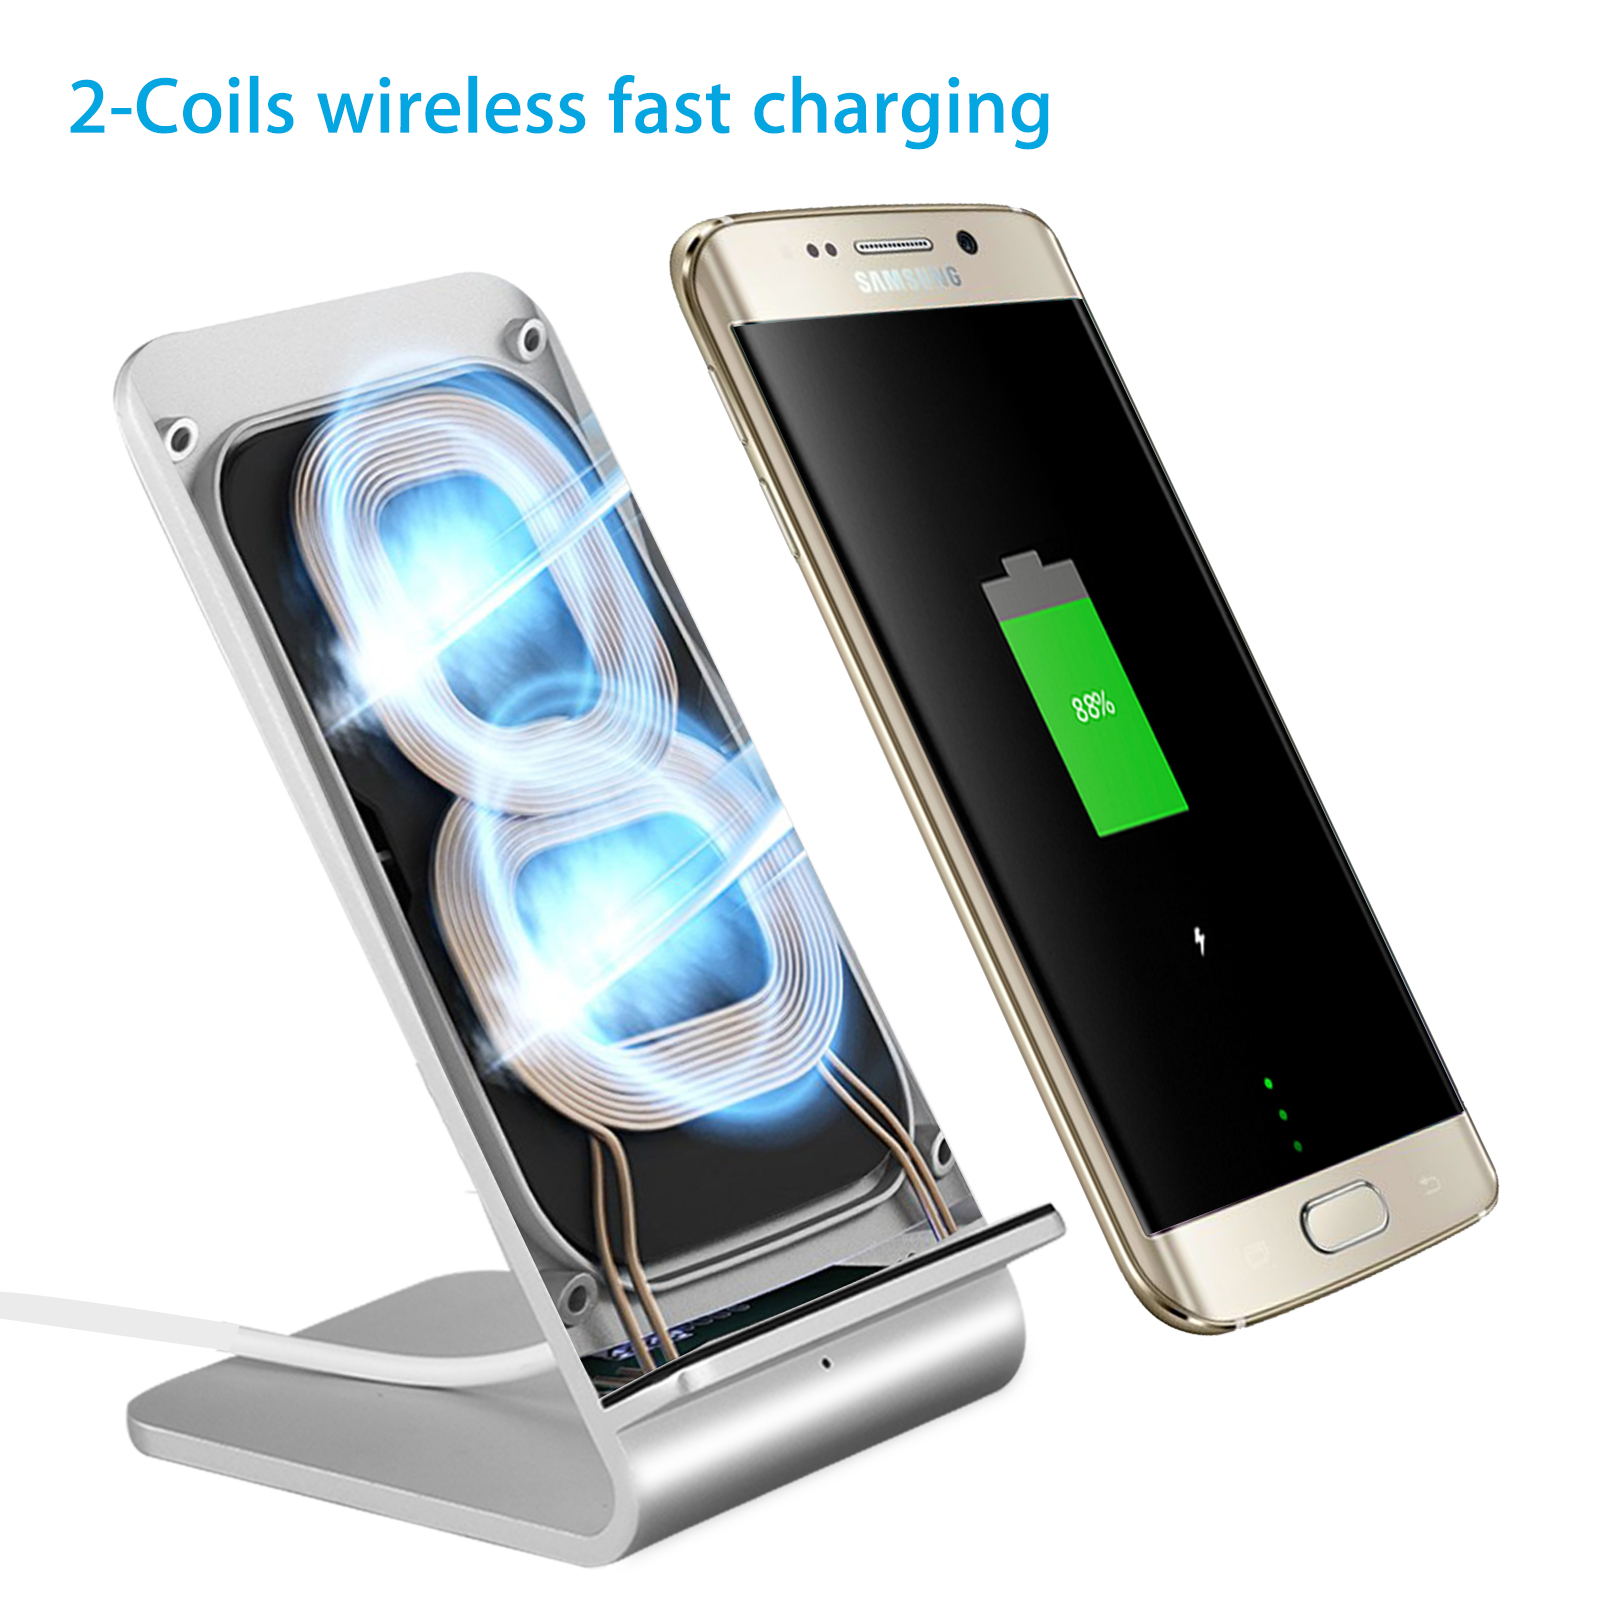 8 Fast Charger Iphone